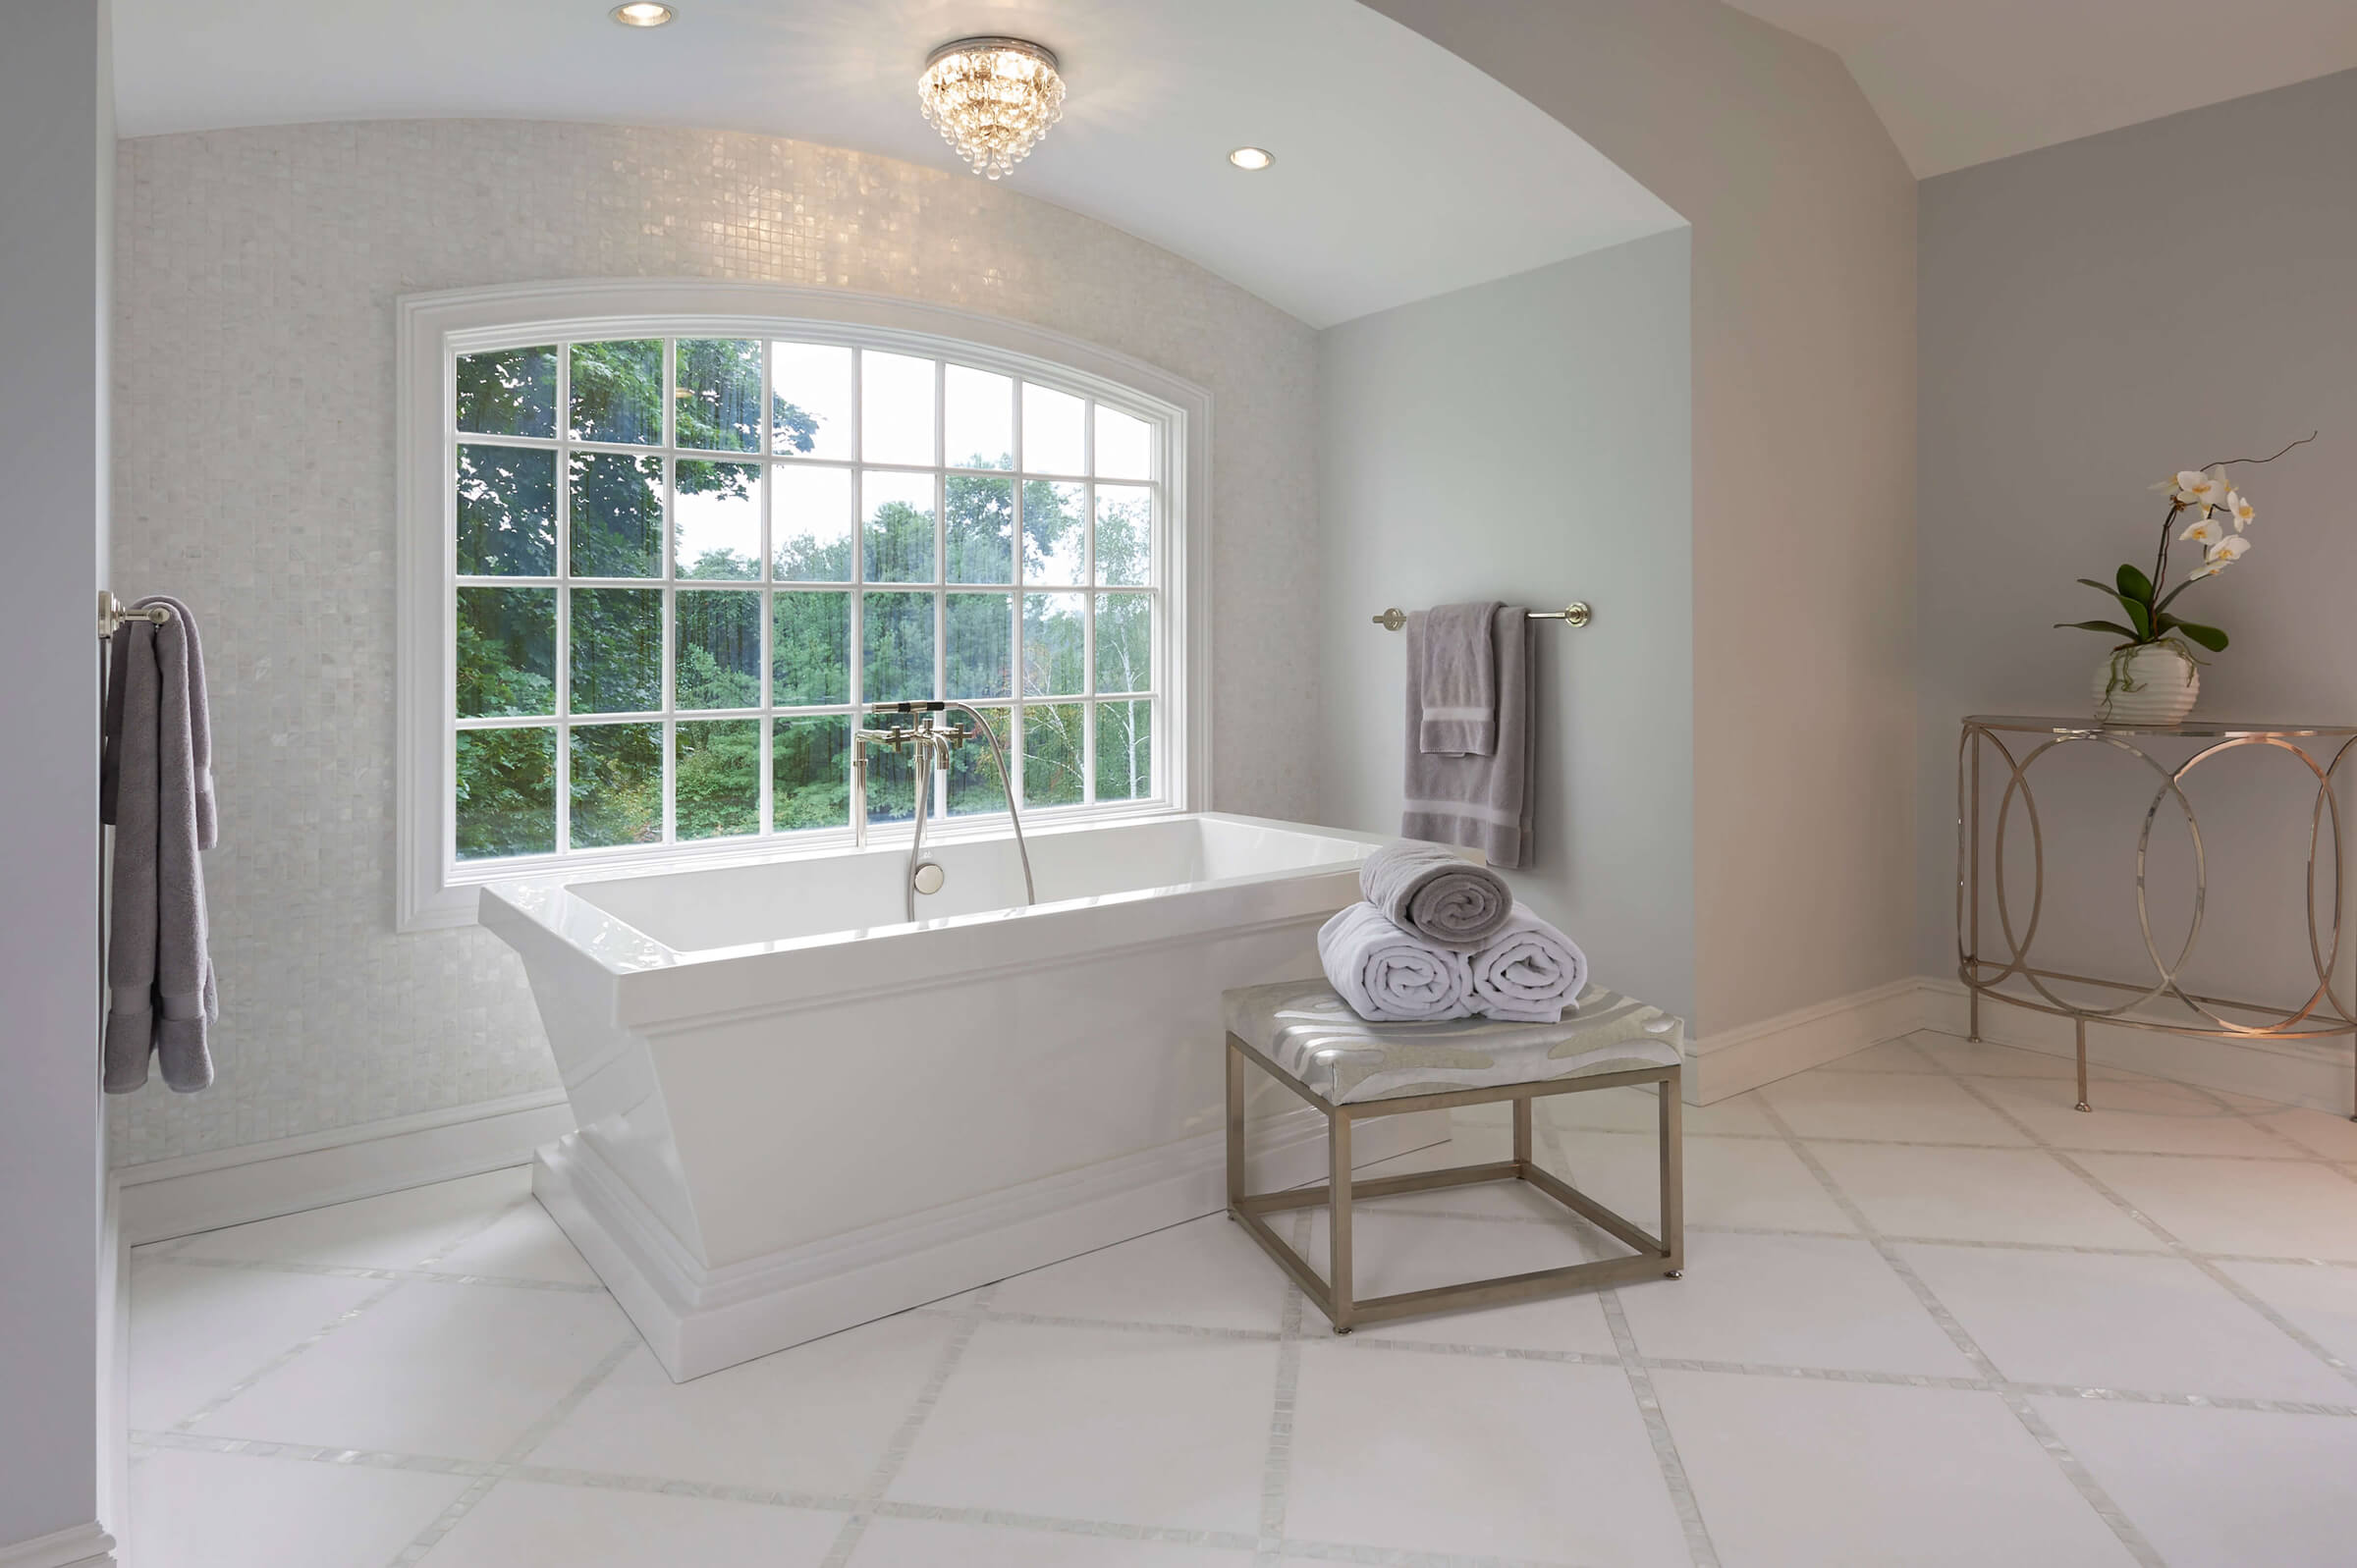 Marble Bath and Mosaic Floor Master Bathroom